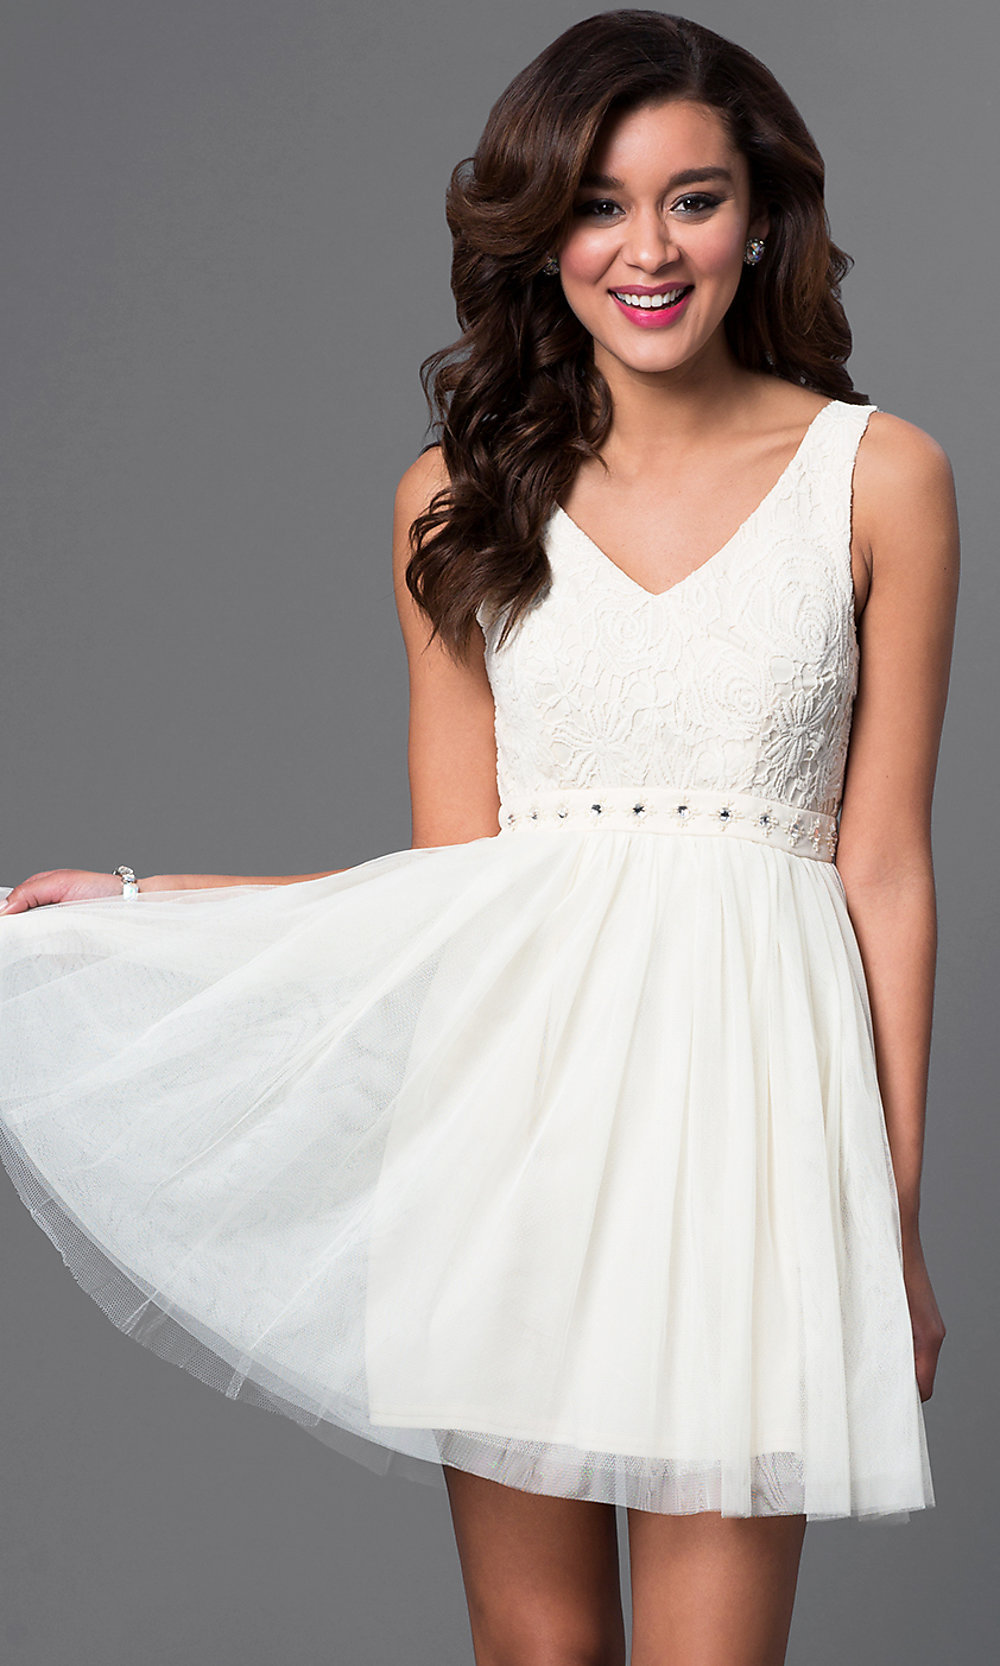 Lace-Top Short Dress with Open Back - PromGirl